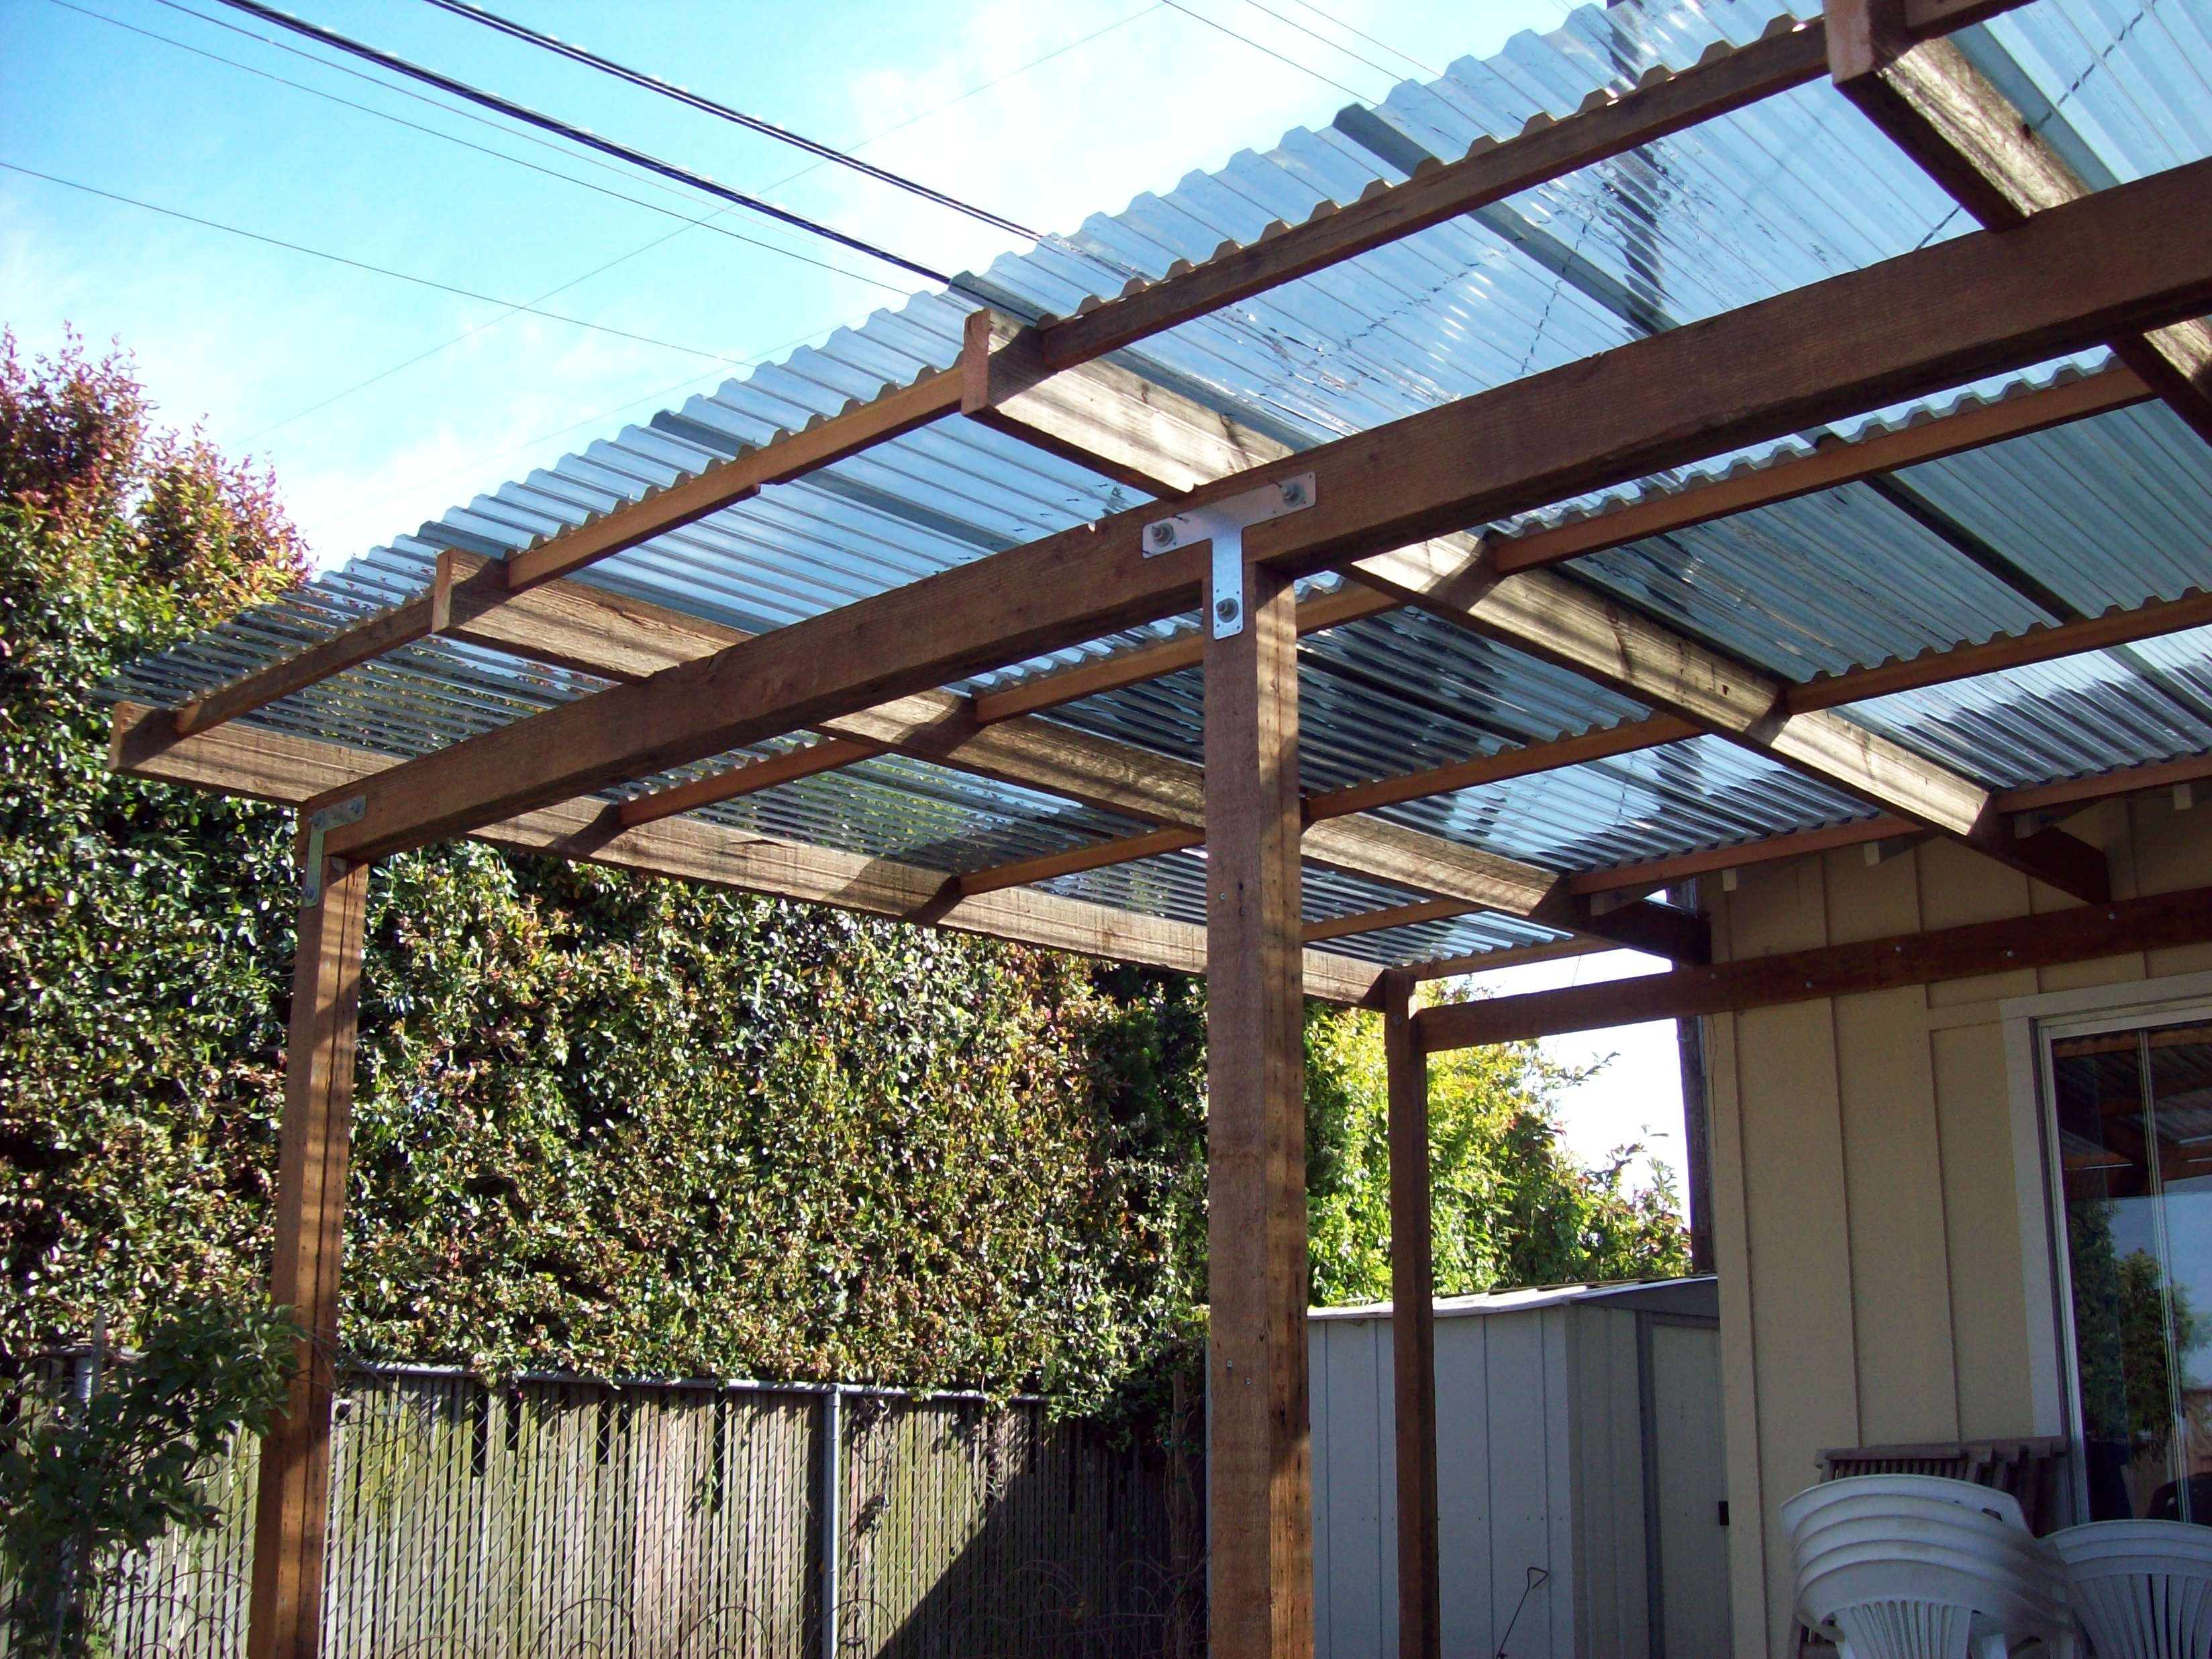 covered patio ideas build a covered patio new patio cover plans popular patio ideas with UKKOSJX